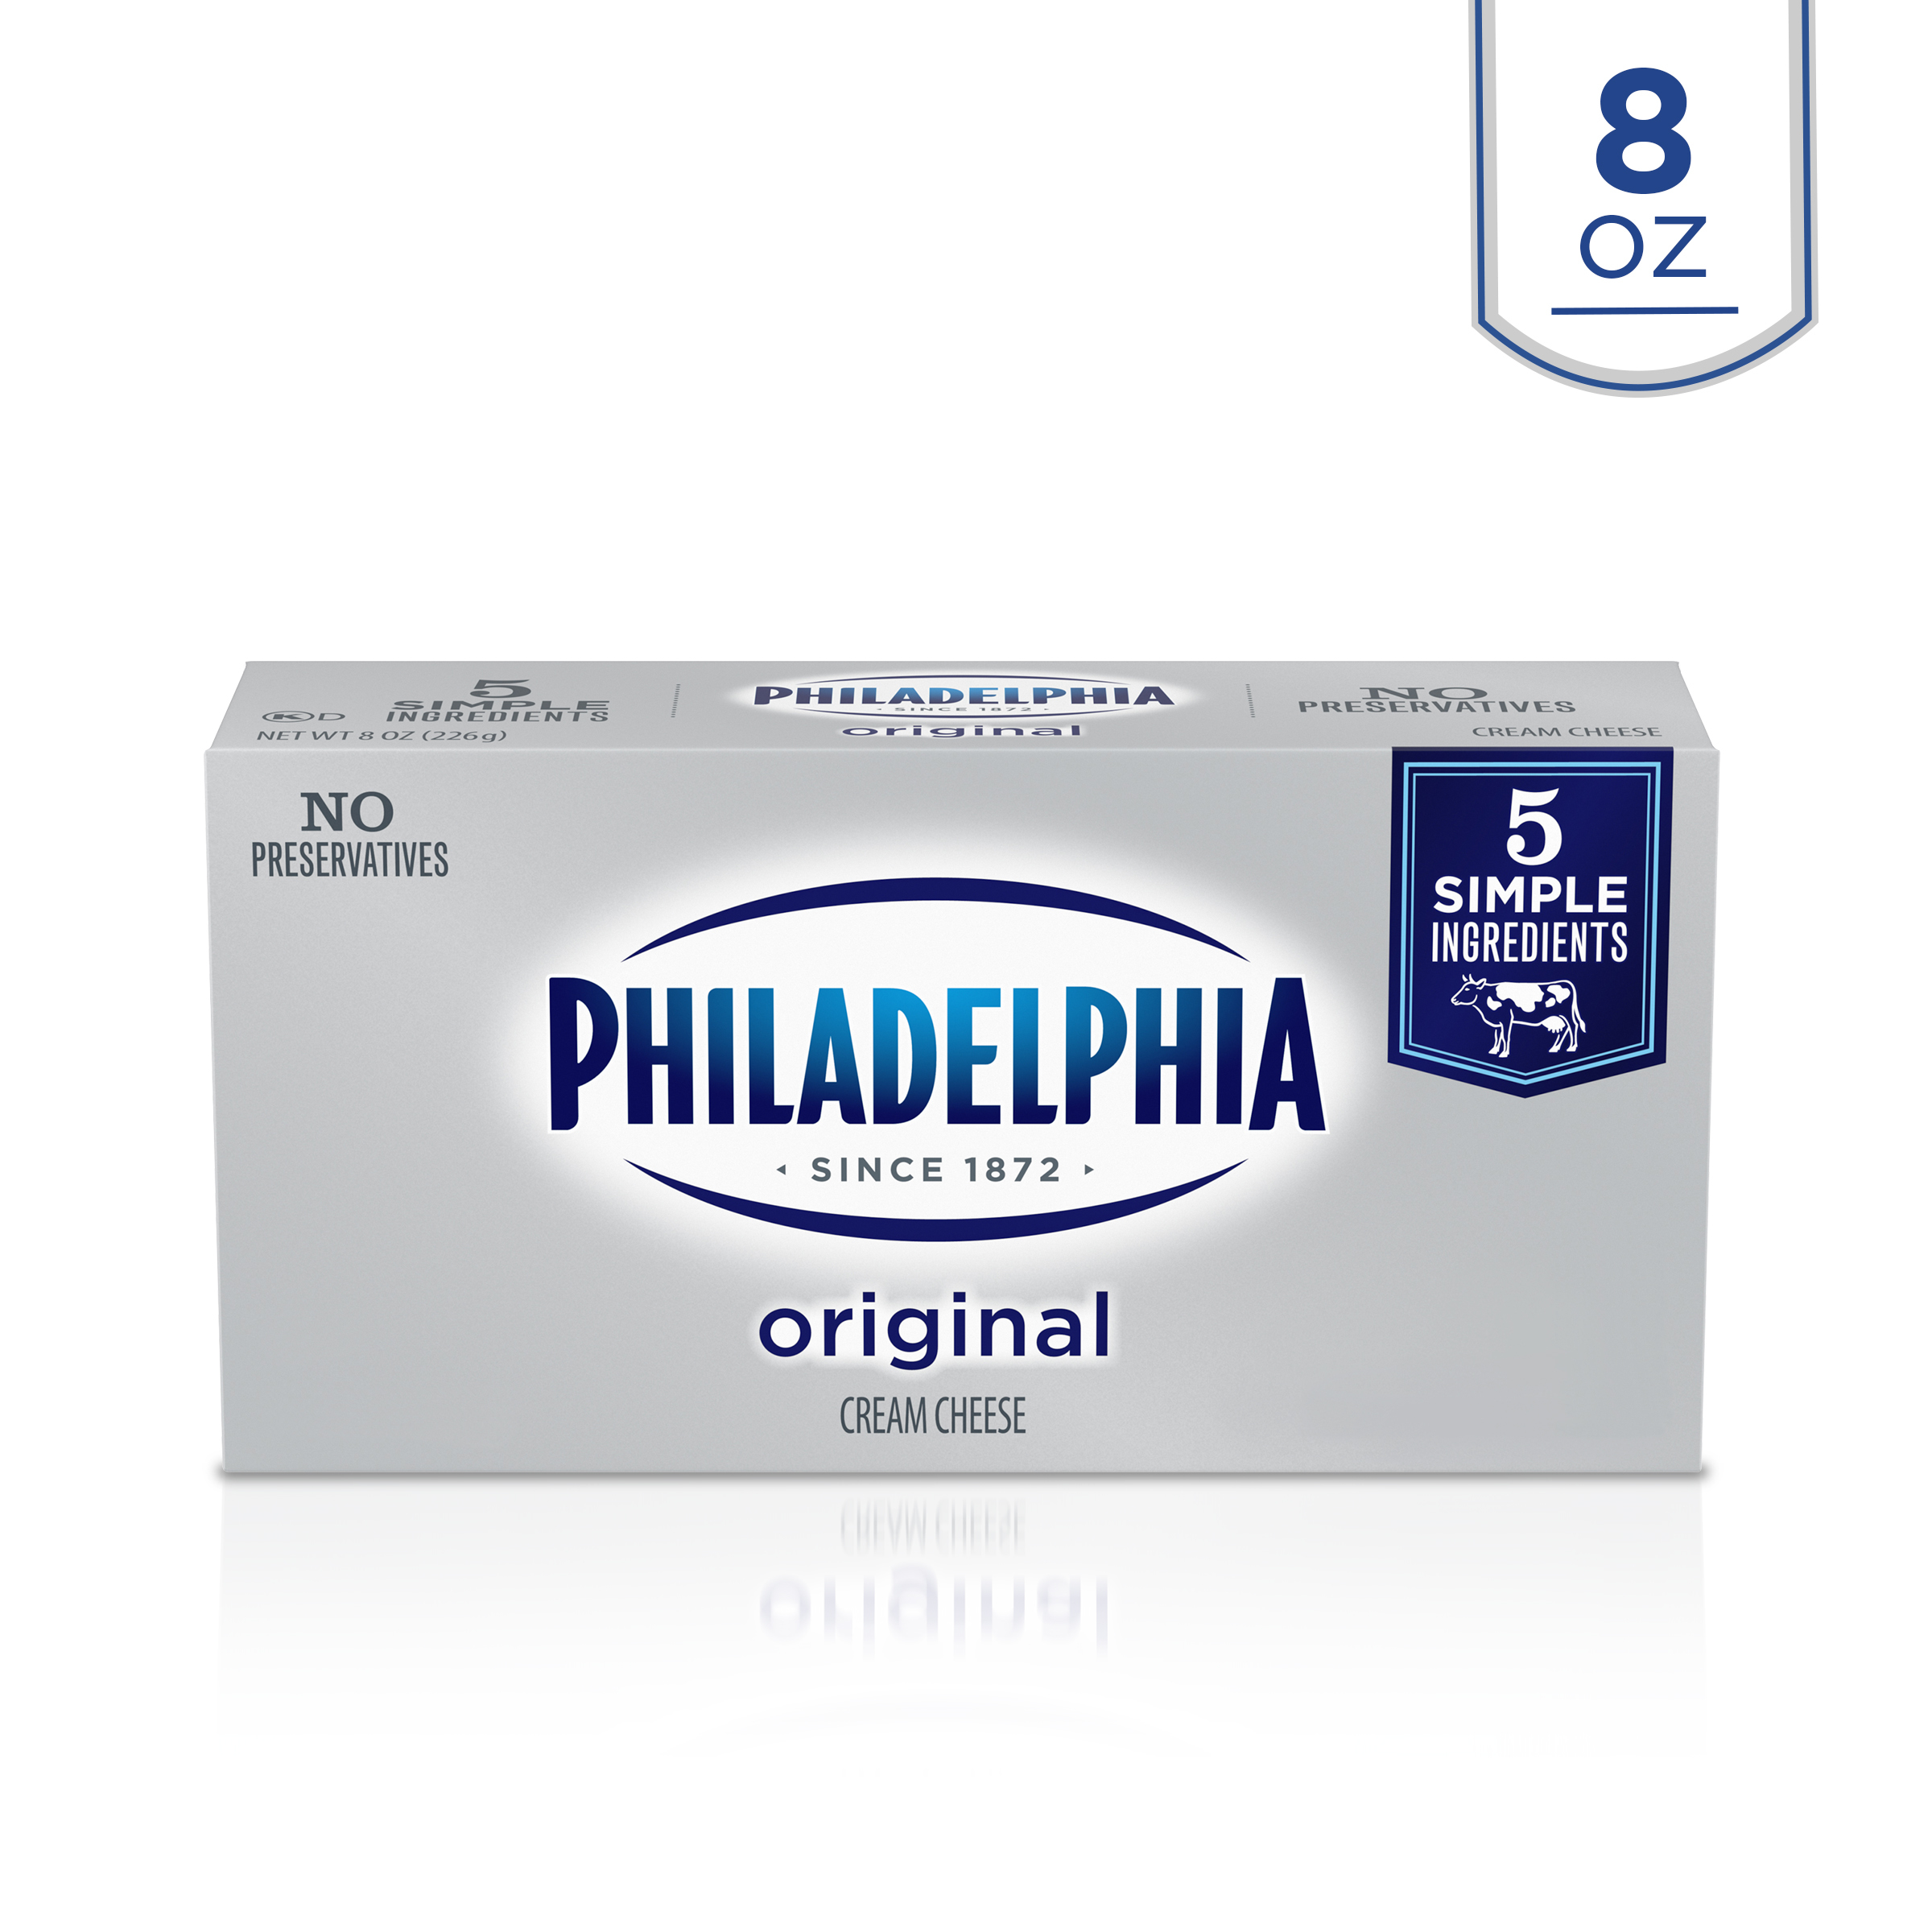 Philadelphia Original Cream Cheese, 8 oz. Box